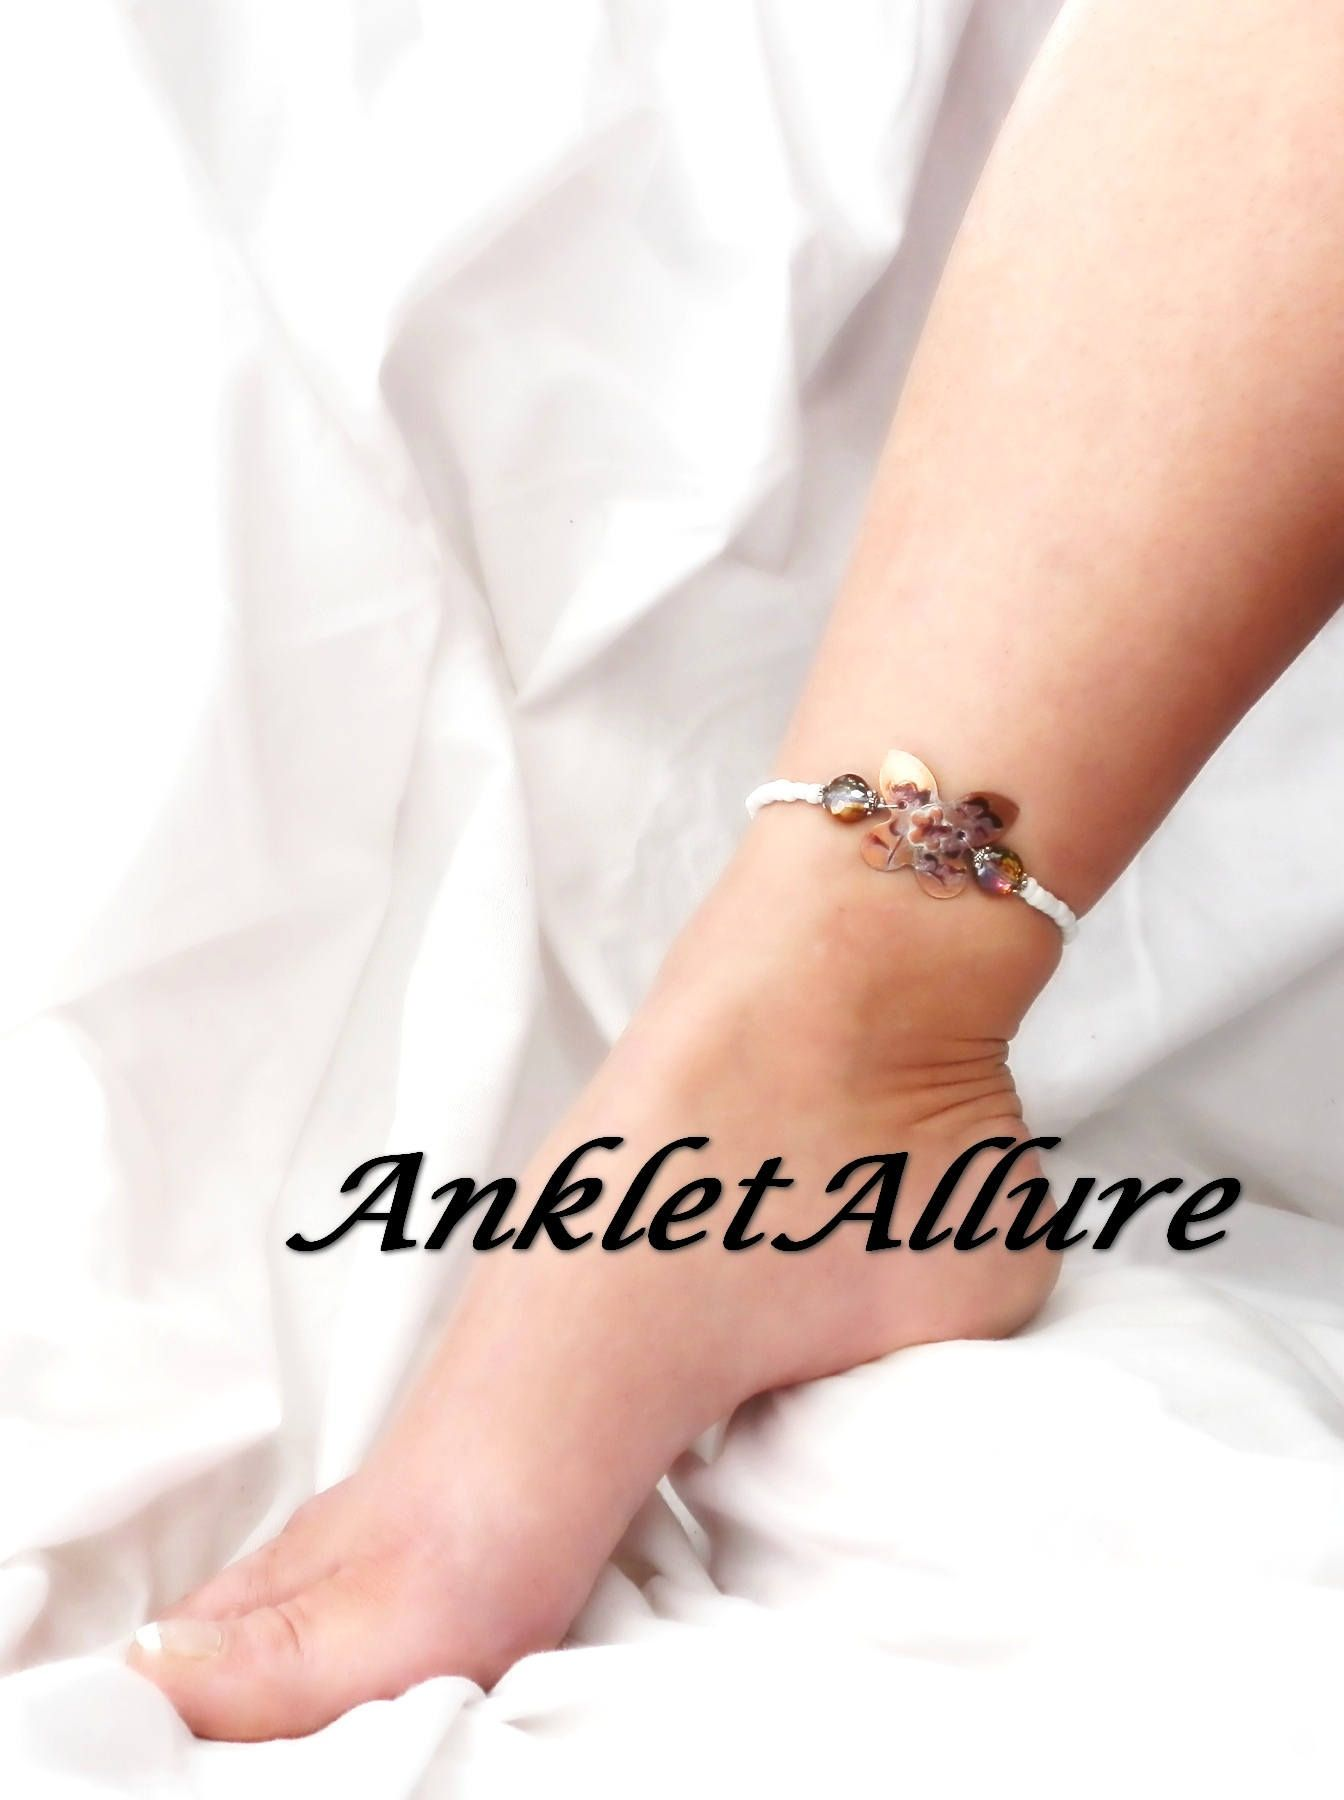 by and rings worn a women anklet anklets fancy stock wearing toe sandals oblacoder cuff woman gladiator india tan photo karnataka ring leather ankle mens